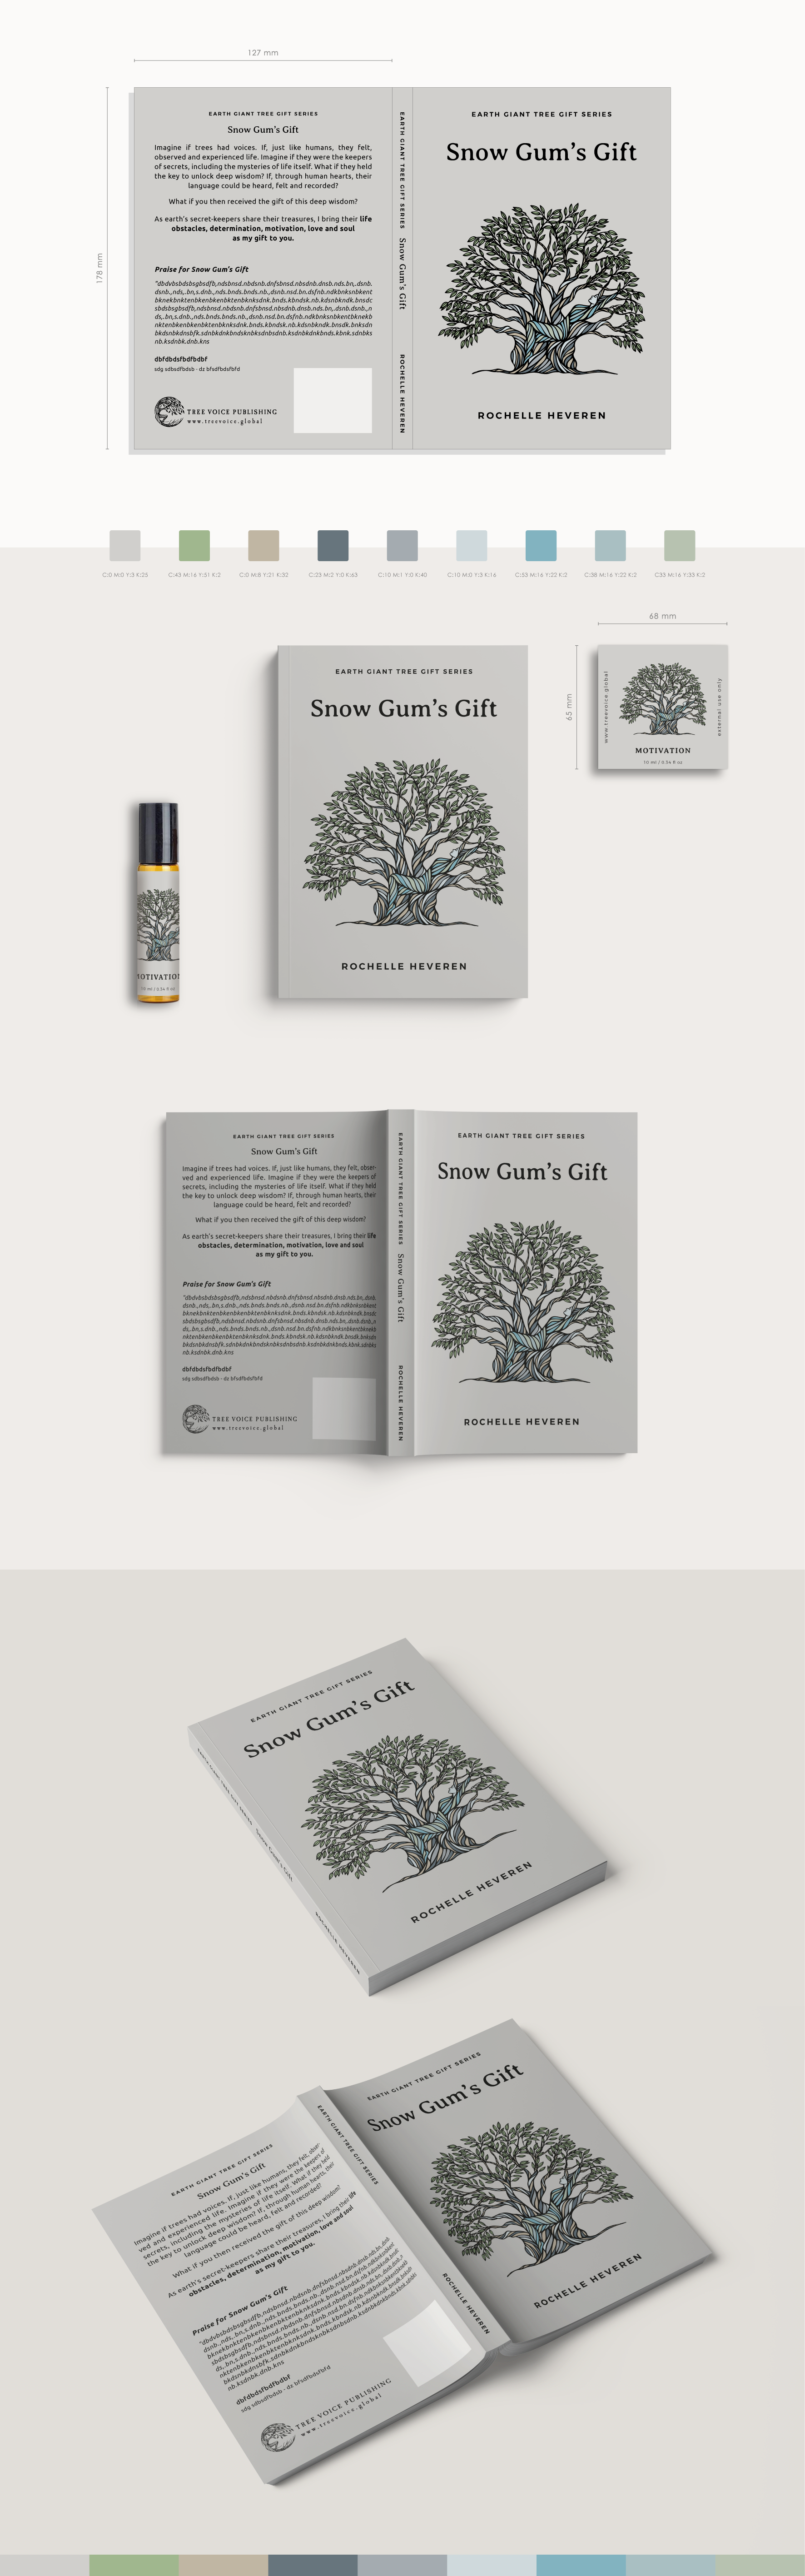 Earth Giant Tree Gift Series - the next 4 trees.